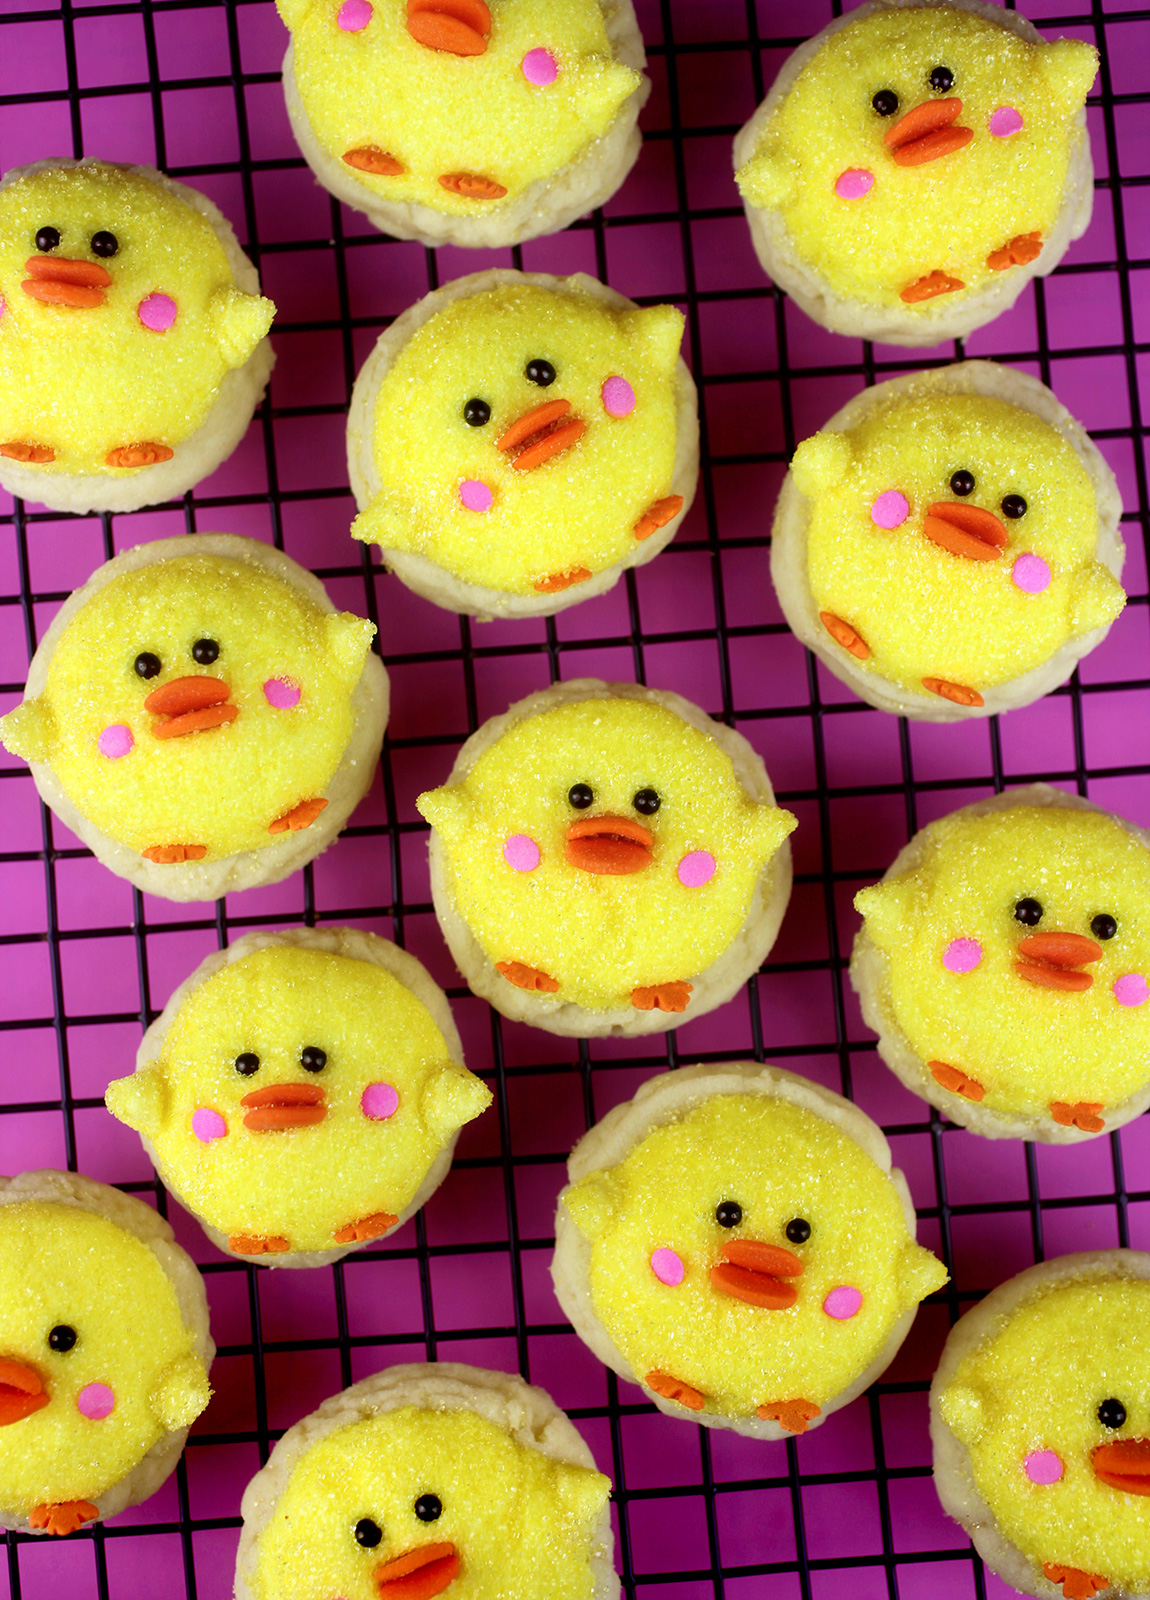 Darling Duckling Sugar Cookies